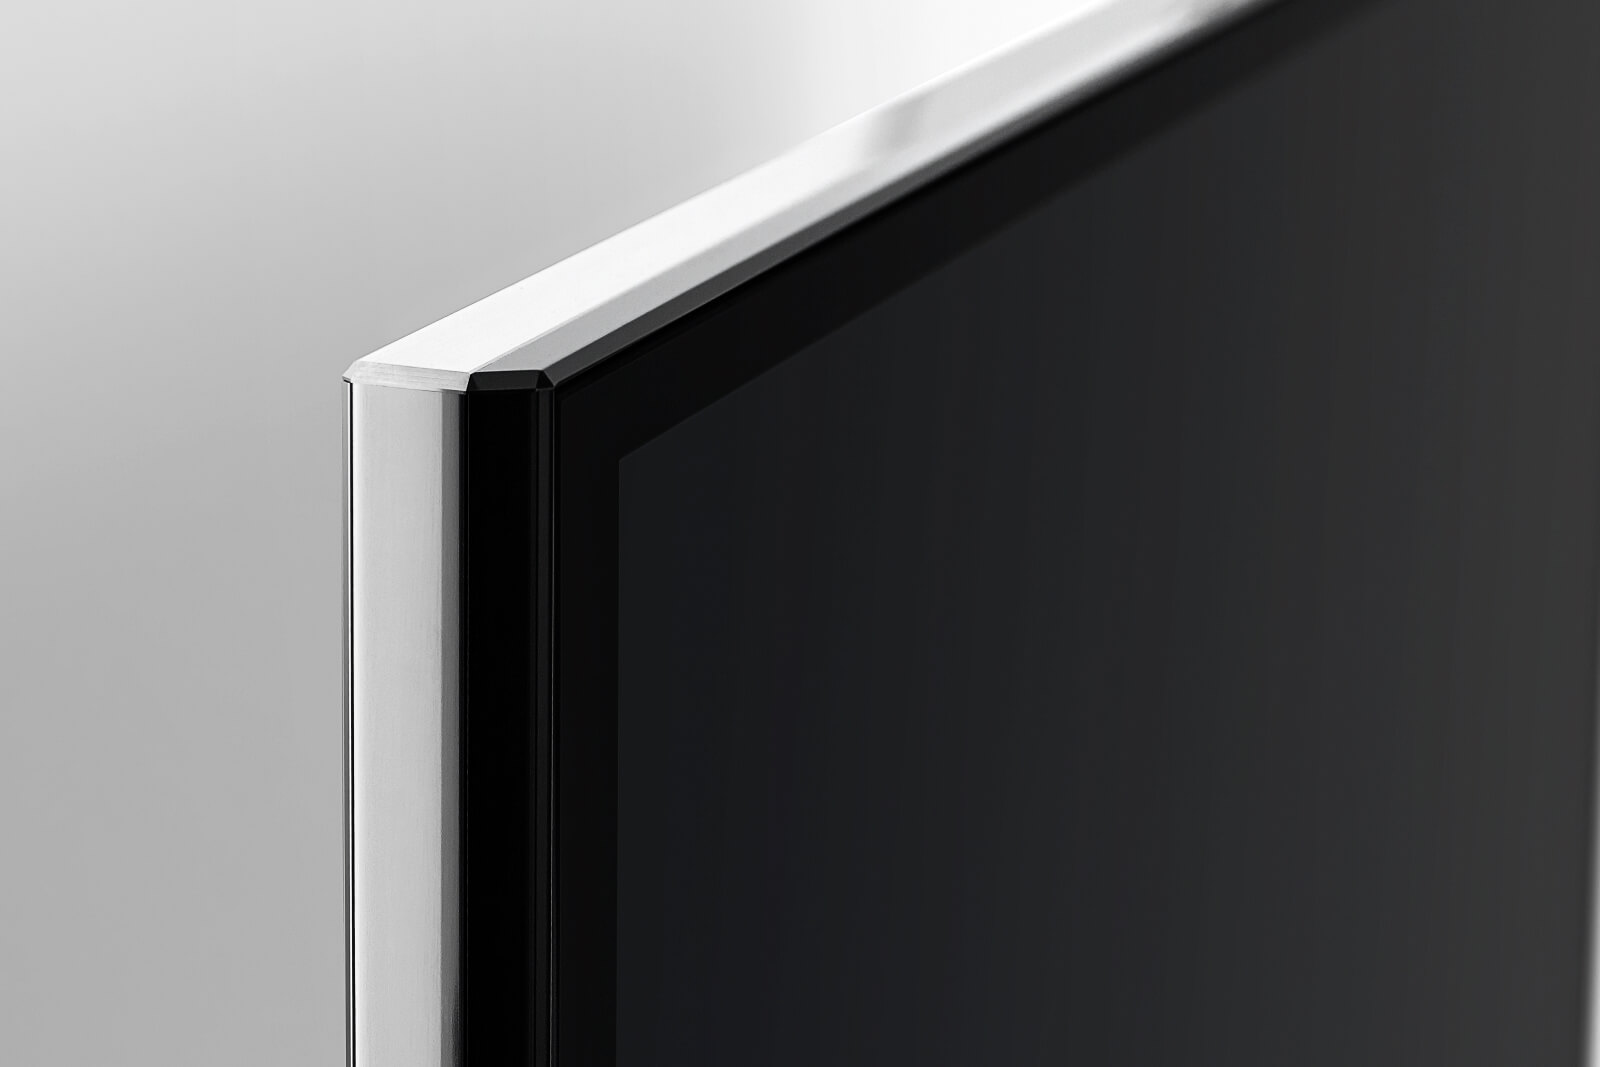 Glass and aluminum frame at BeoVision Avant merge seamlessly.